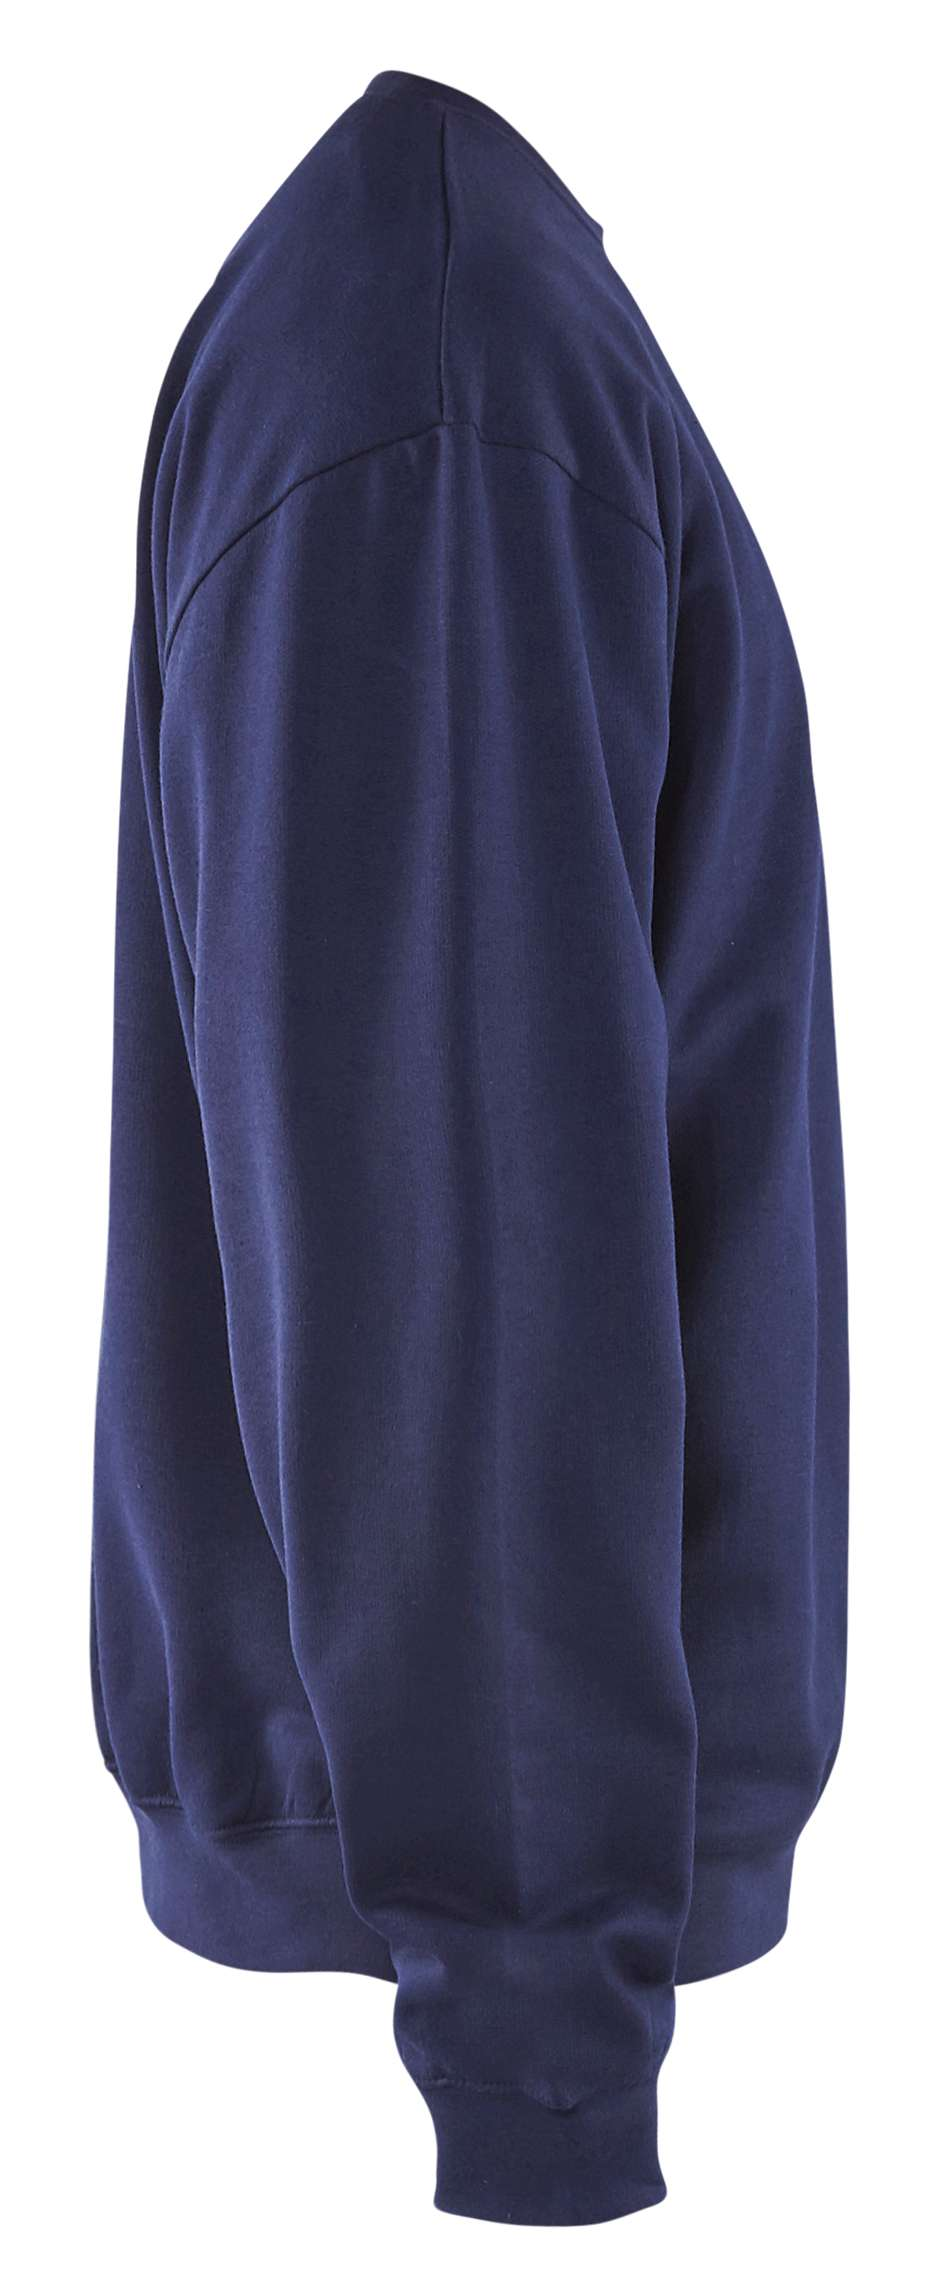 Blaklader Sweatshirts 30741750 Multinorm marineblauw(8900)